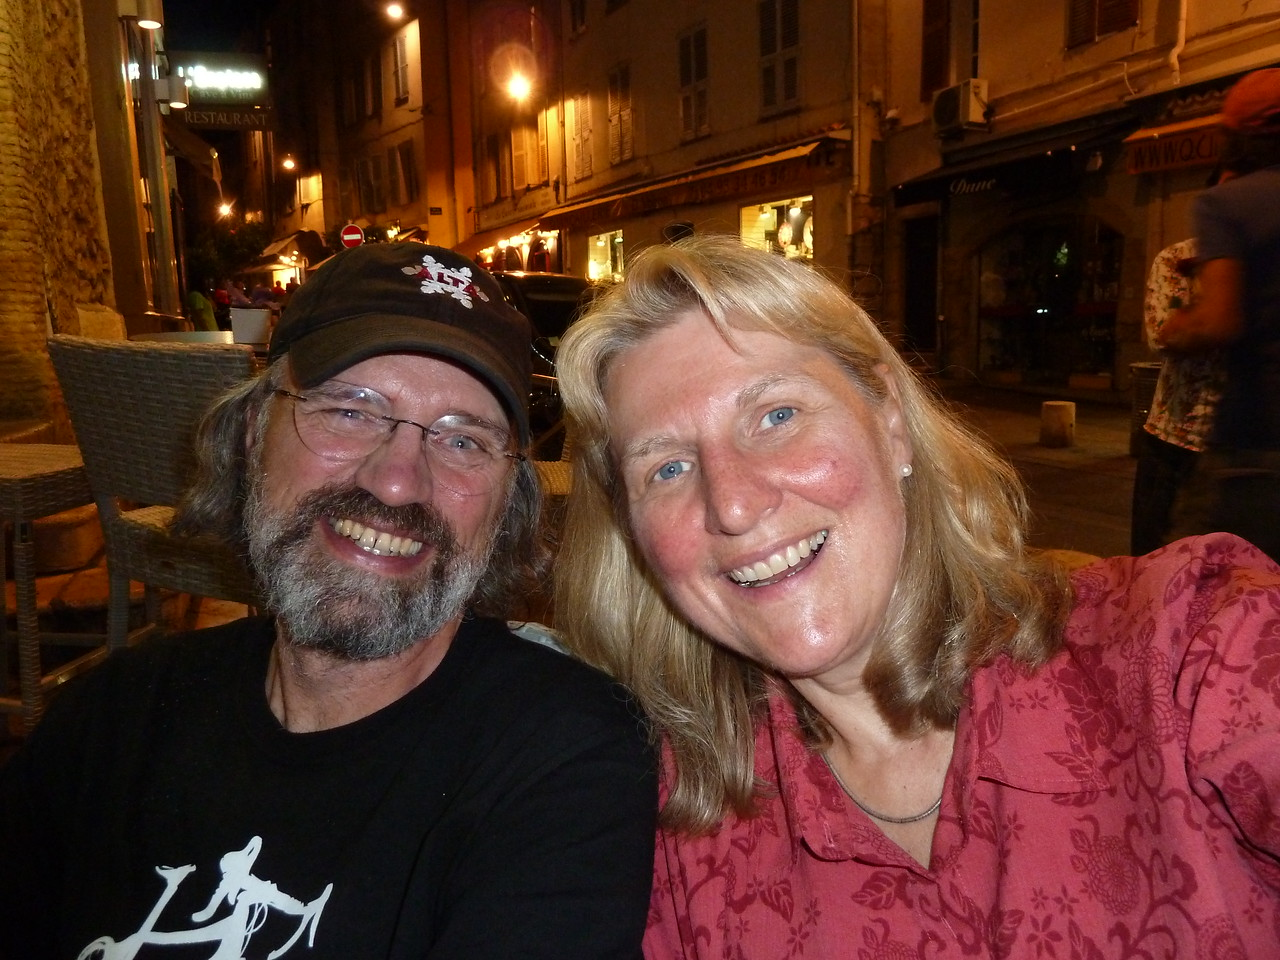 Having drinks and a grand ol' time in medieval Antibes, France.